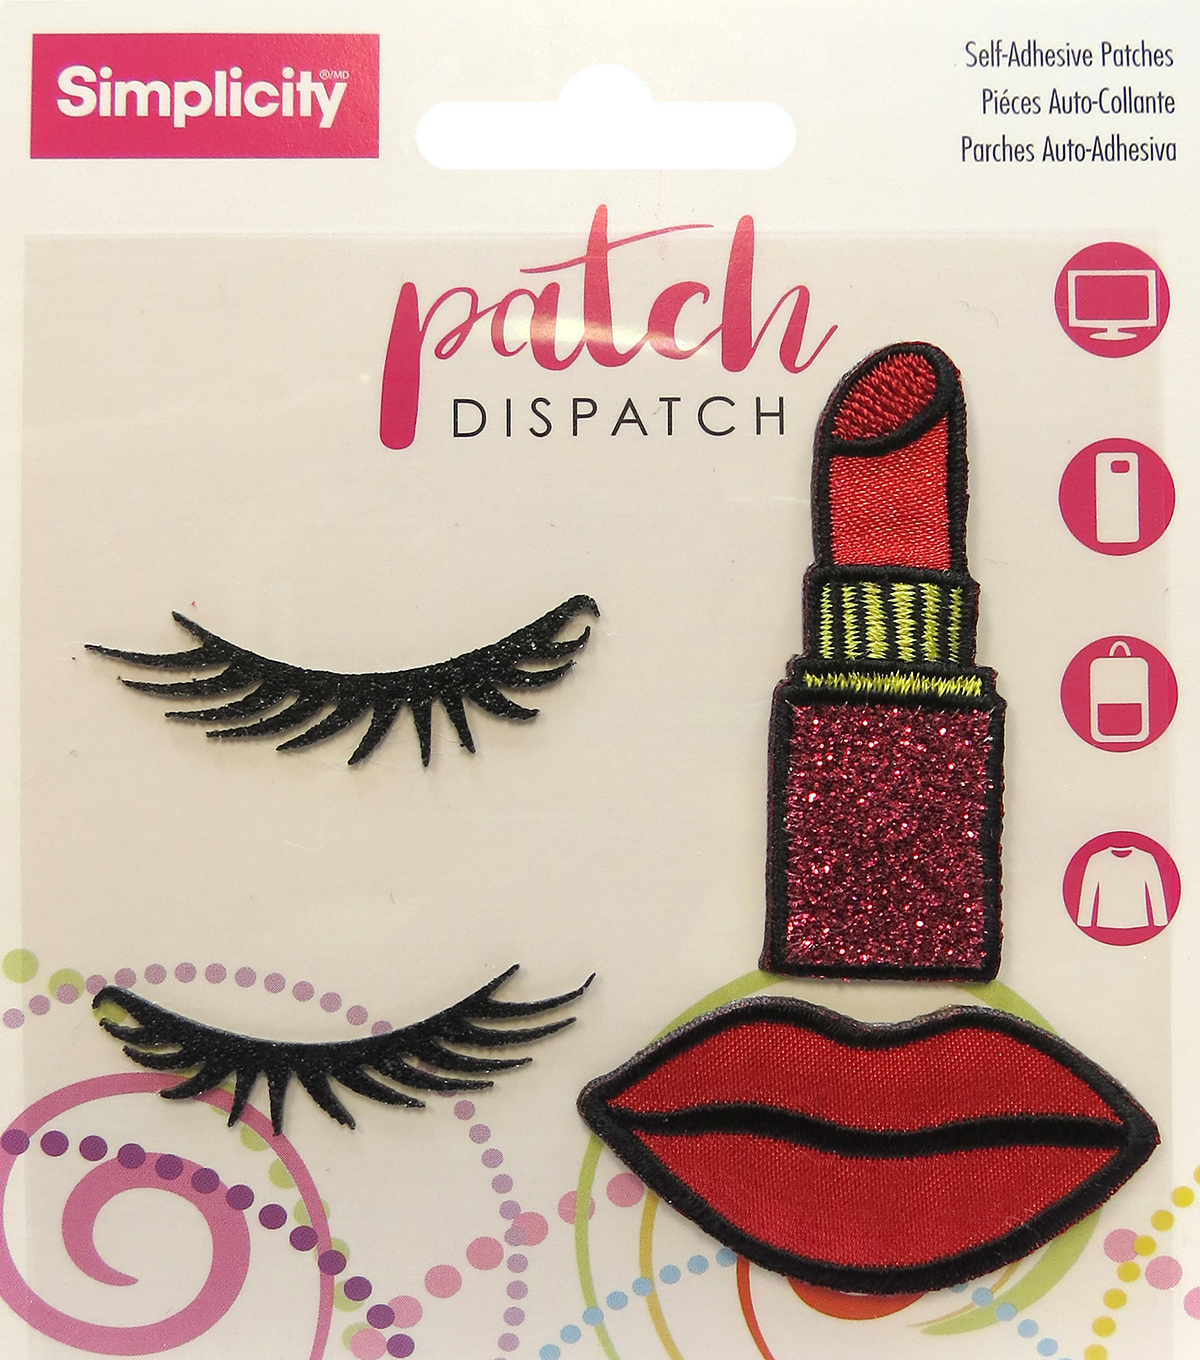 Simplicity® Embroidered Self-Adhesive Patches-Lipstick-4 Pack